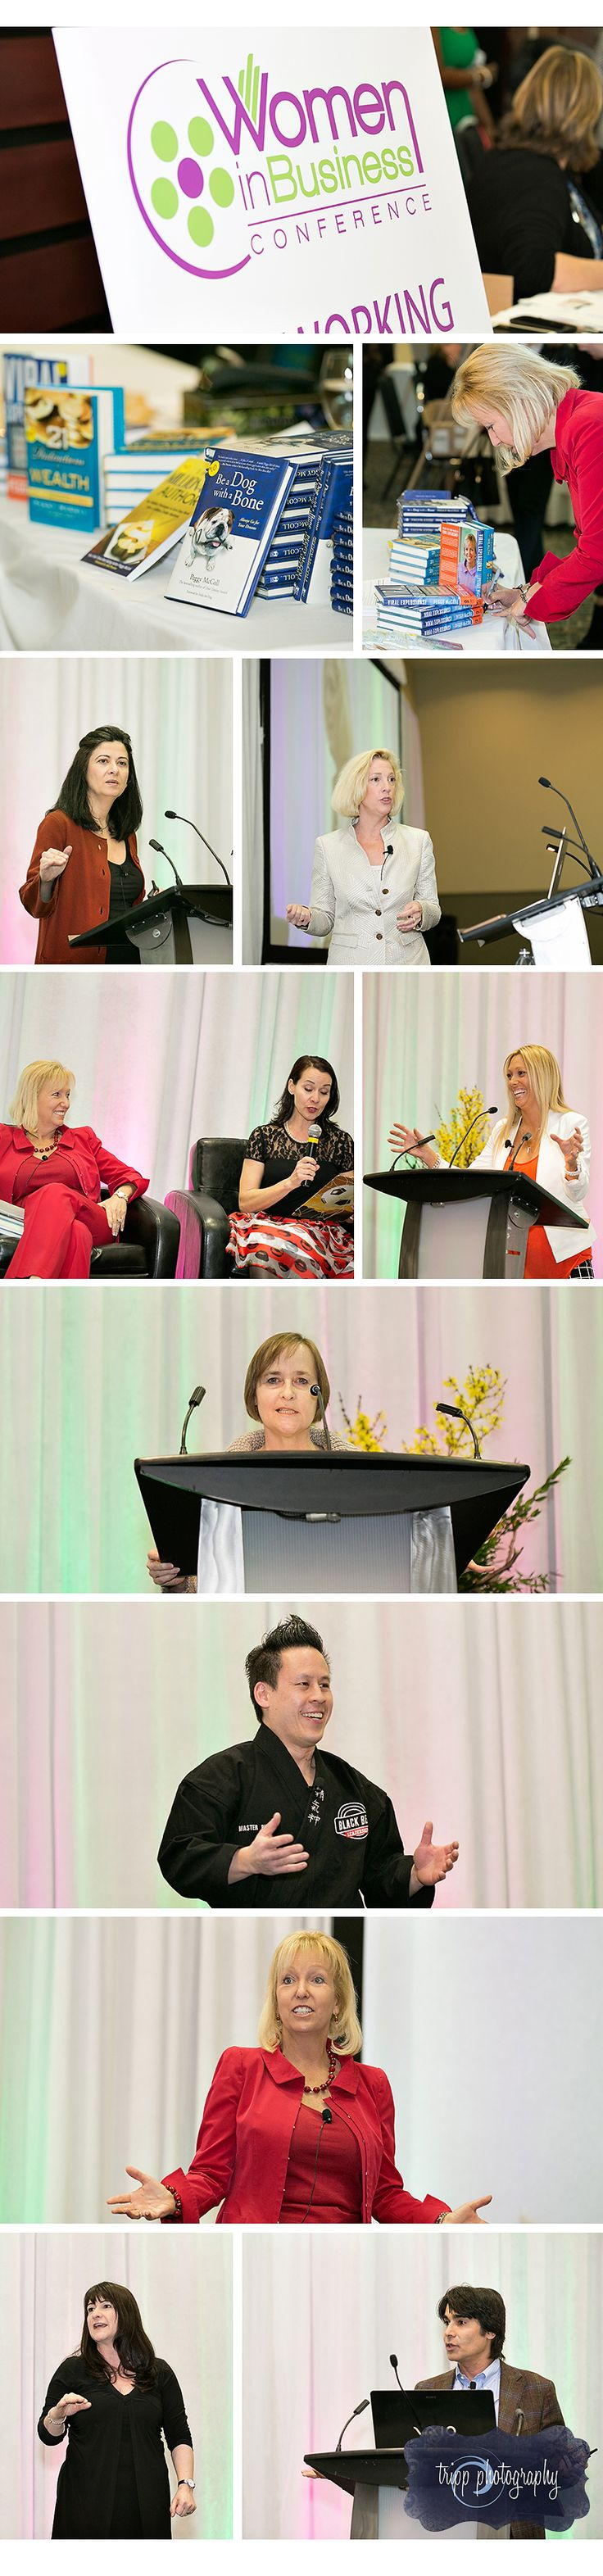 The 2015 Women in Business Conference speakers included the Minister responsible for Status of Women, Dr. Kellie Leitch; high-level cybersecurity expert, Melissa Hathaway; certified holistic health coach, Holly Warner; award-winning mystery-writer, Peggy Blair; Bully Busters founder Master Phil; NY Times best selling author, Peggy McColl; physician and TV host, Dr. Robert Setari; and speaker, actress and comedian, Kate Davis. | Tripp Photography | Professional Photographer | Ottawa, ON